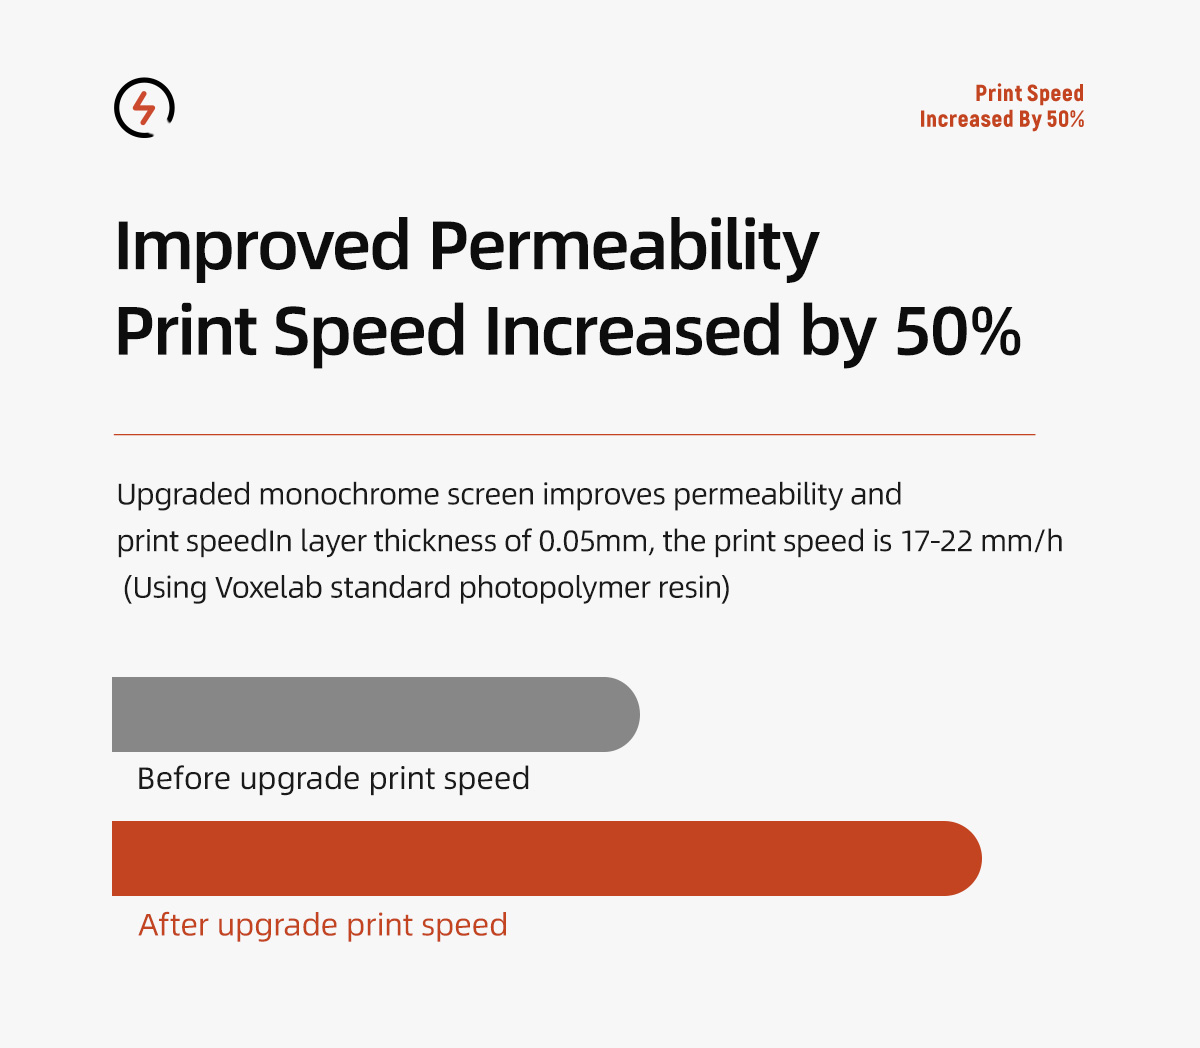 Upgraded monochrome screen improves permeability and print speed In layer thickness of 0.05mm, the print speed is 17-22 mm/h (Using Voxelab standard photopolymer resin)